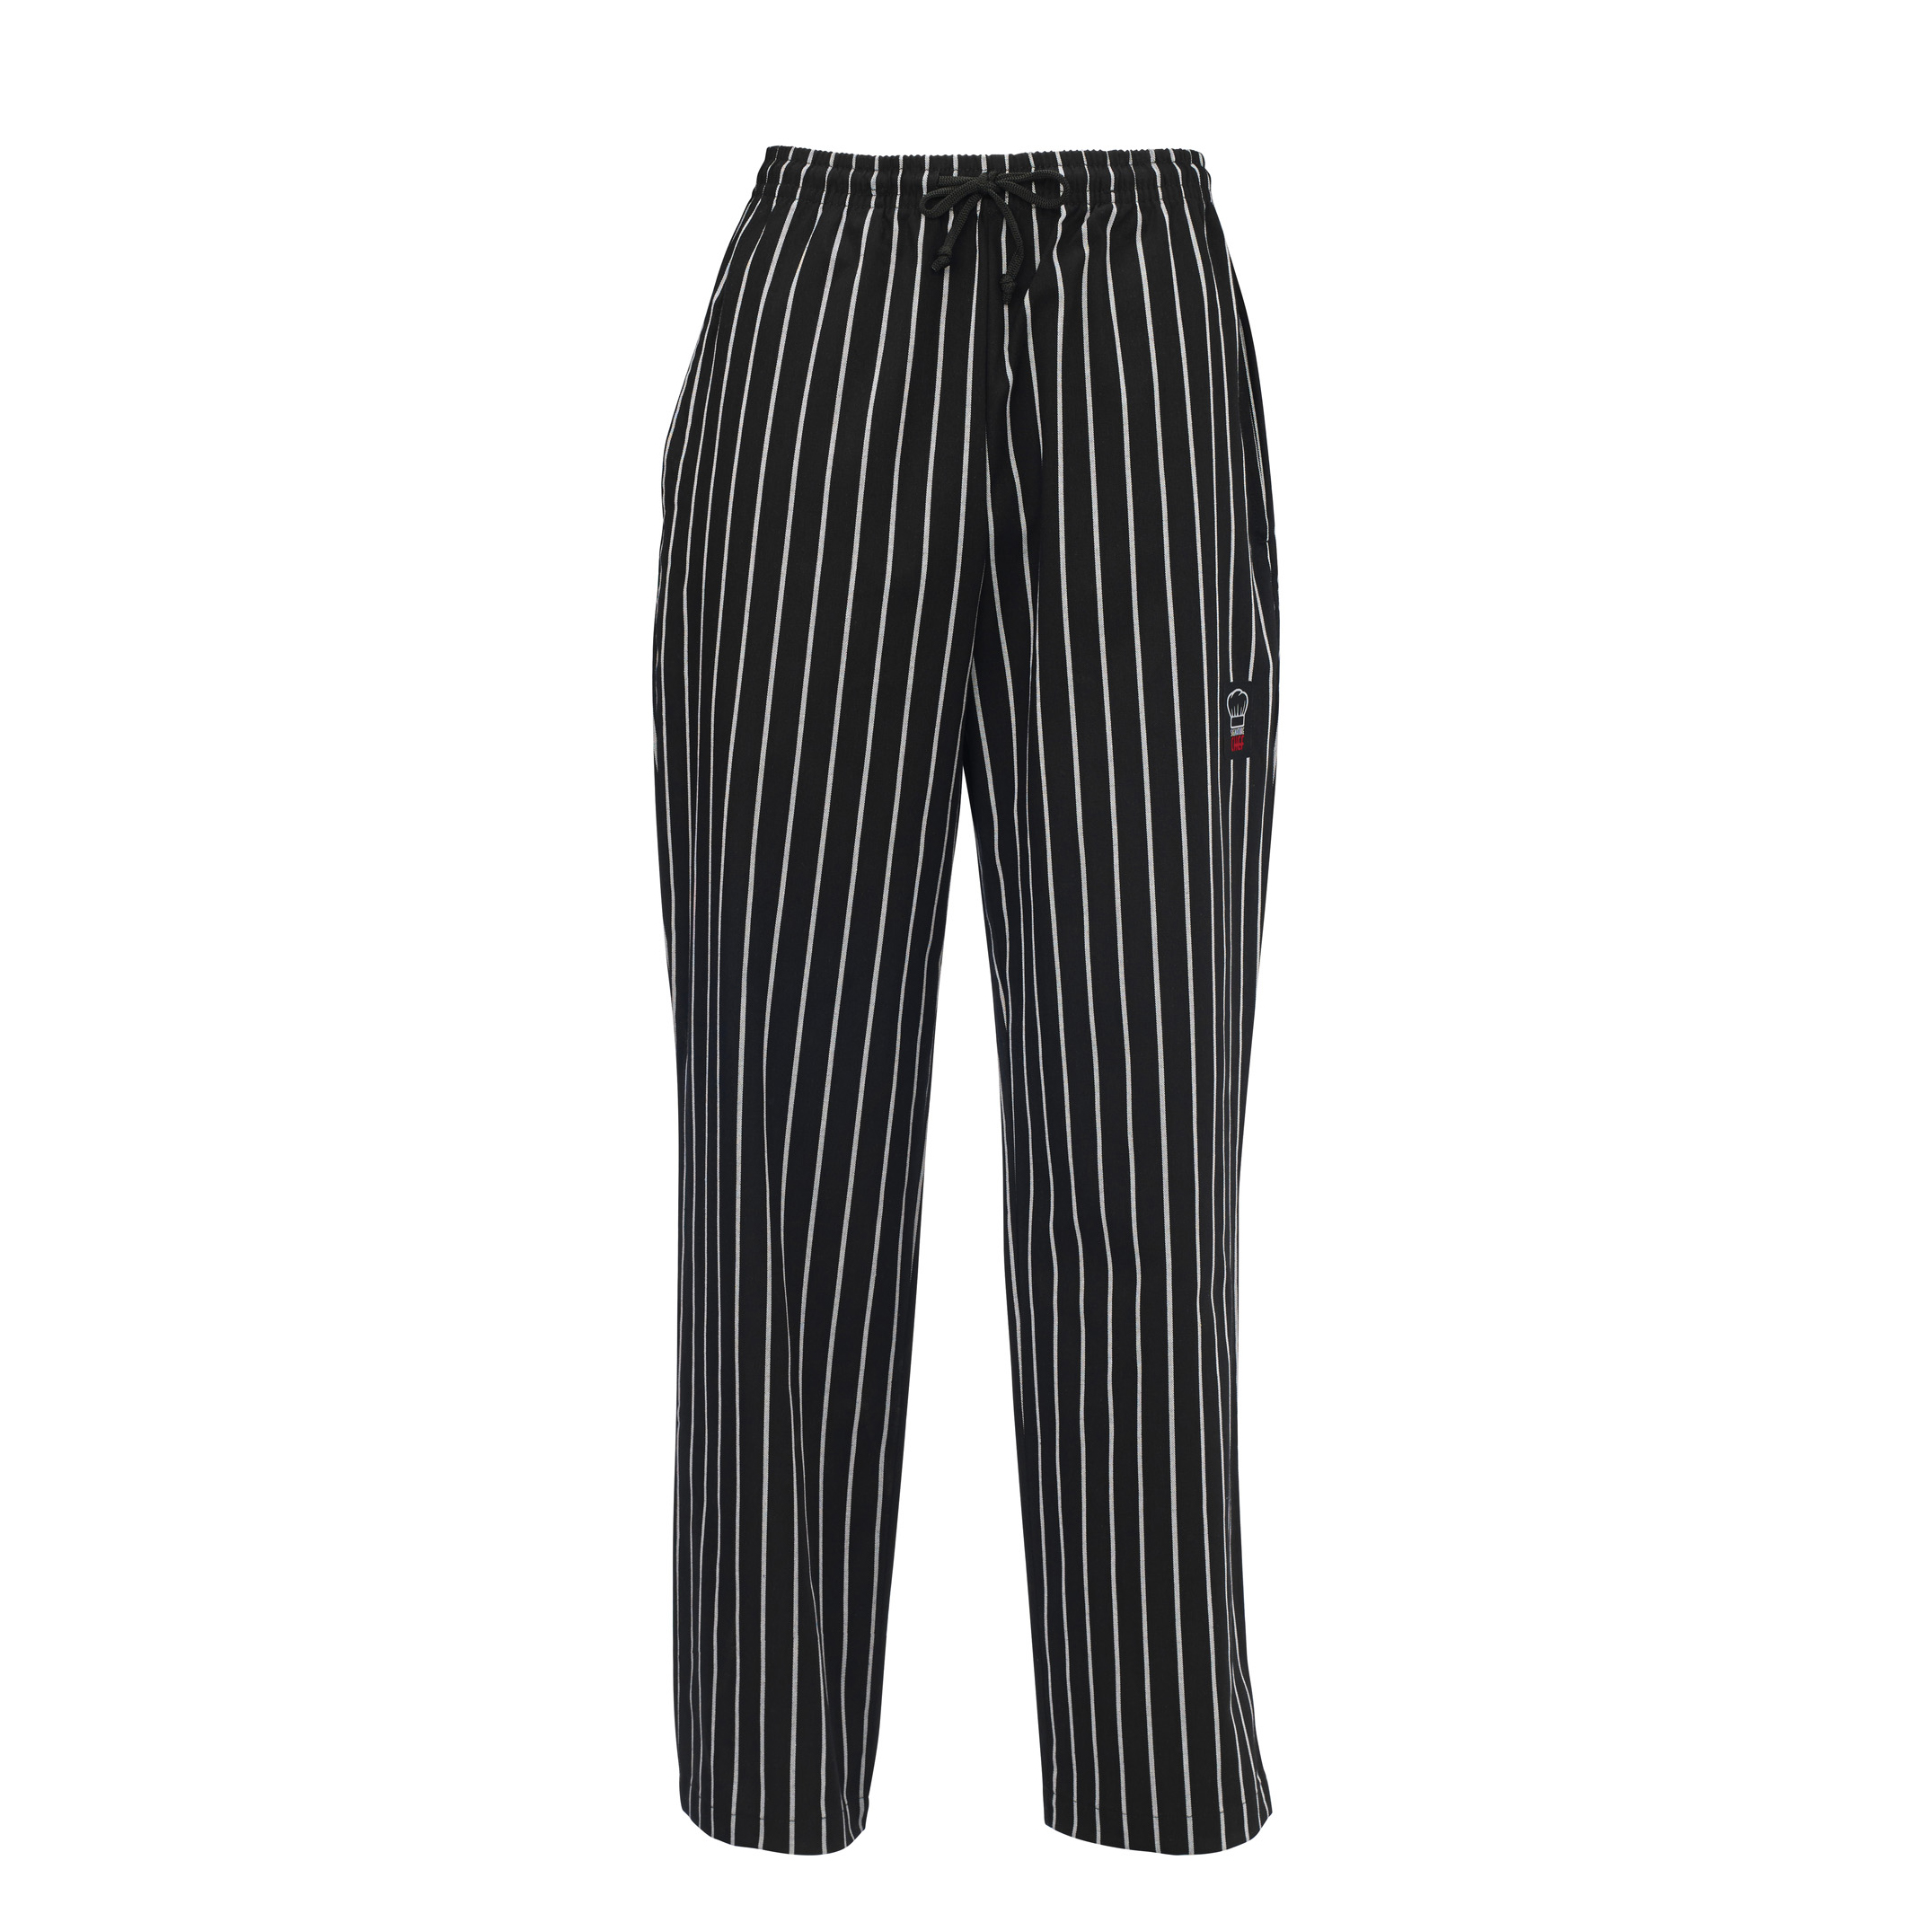 Winco UNF-3CXXL chef's pants